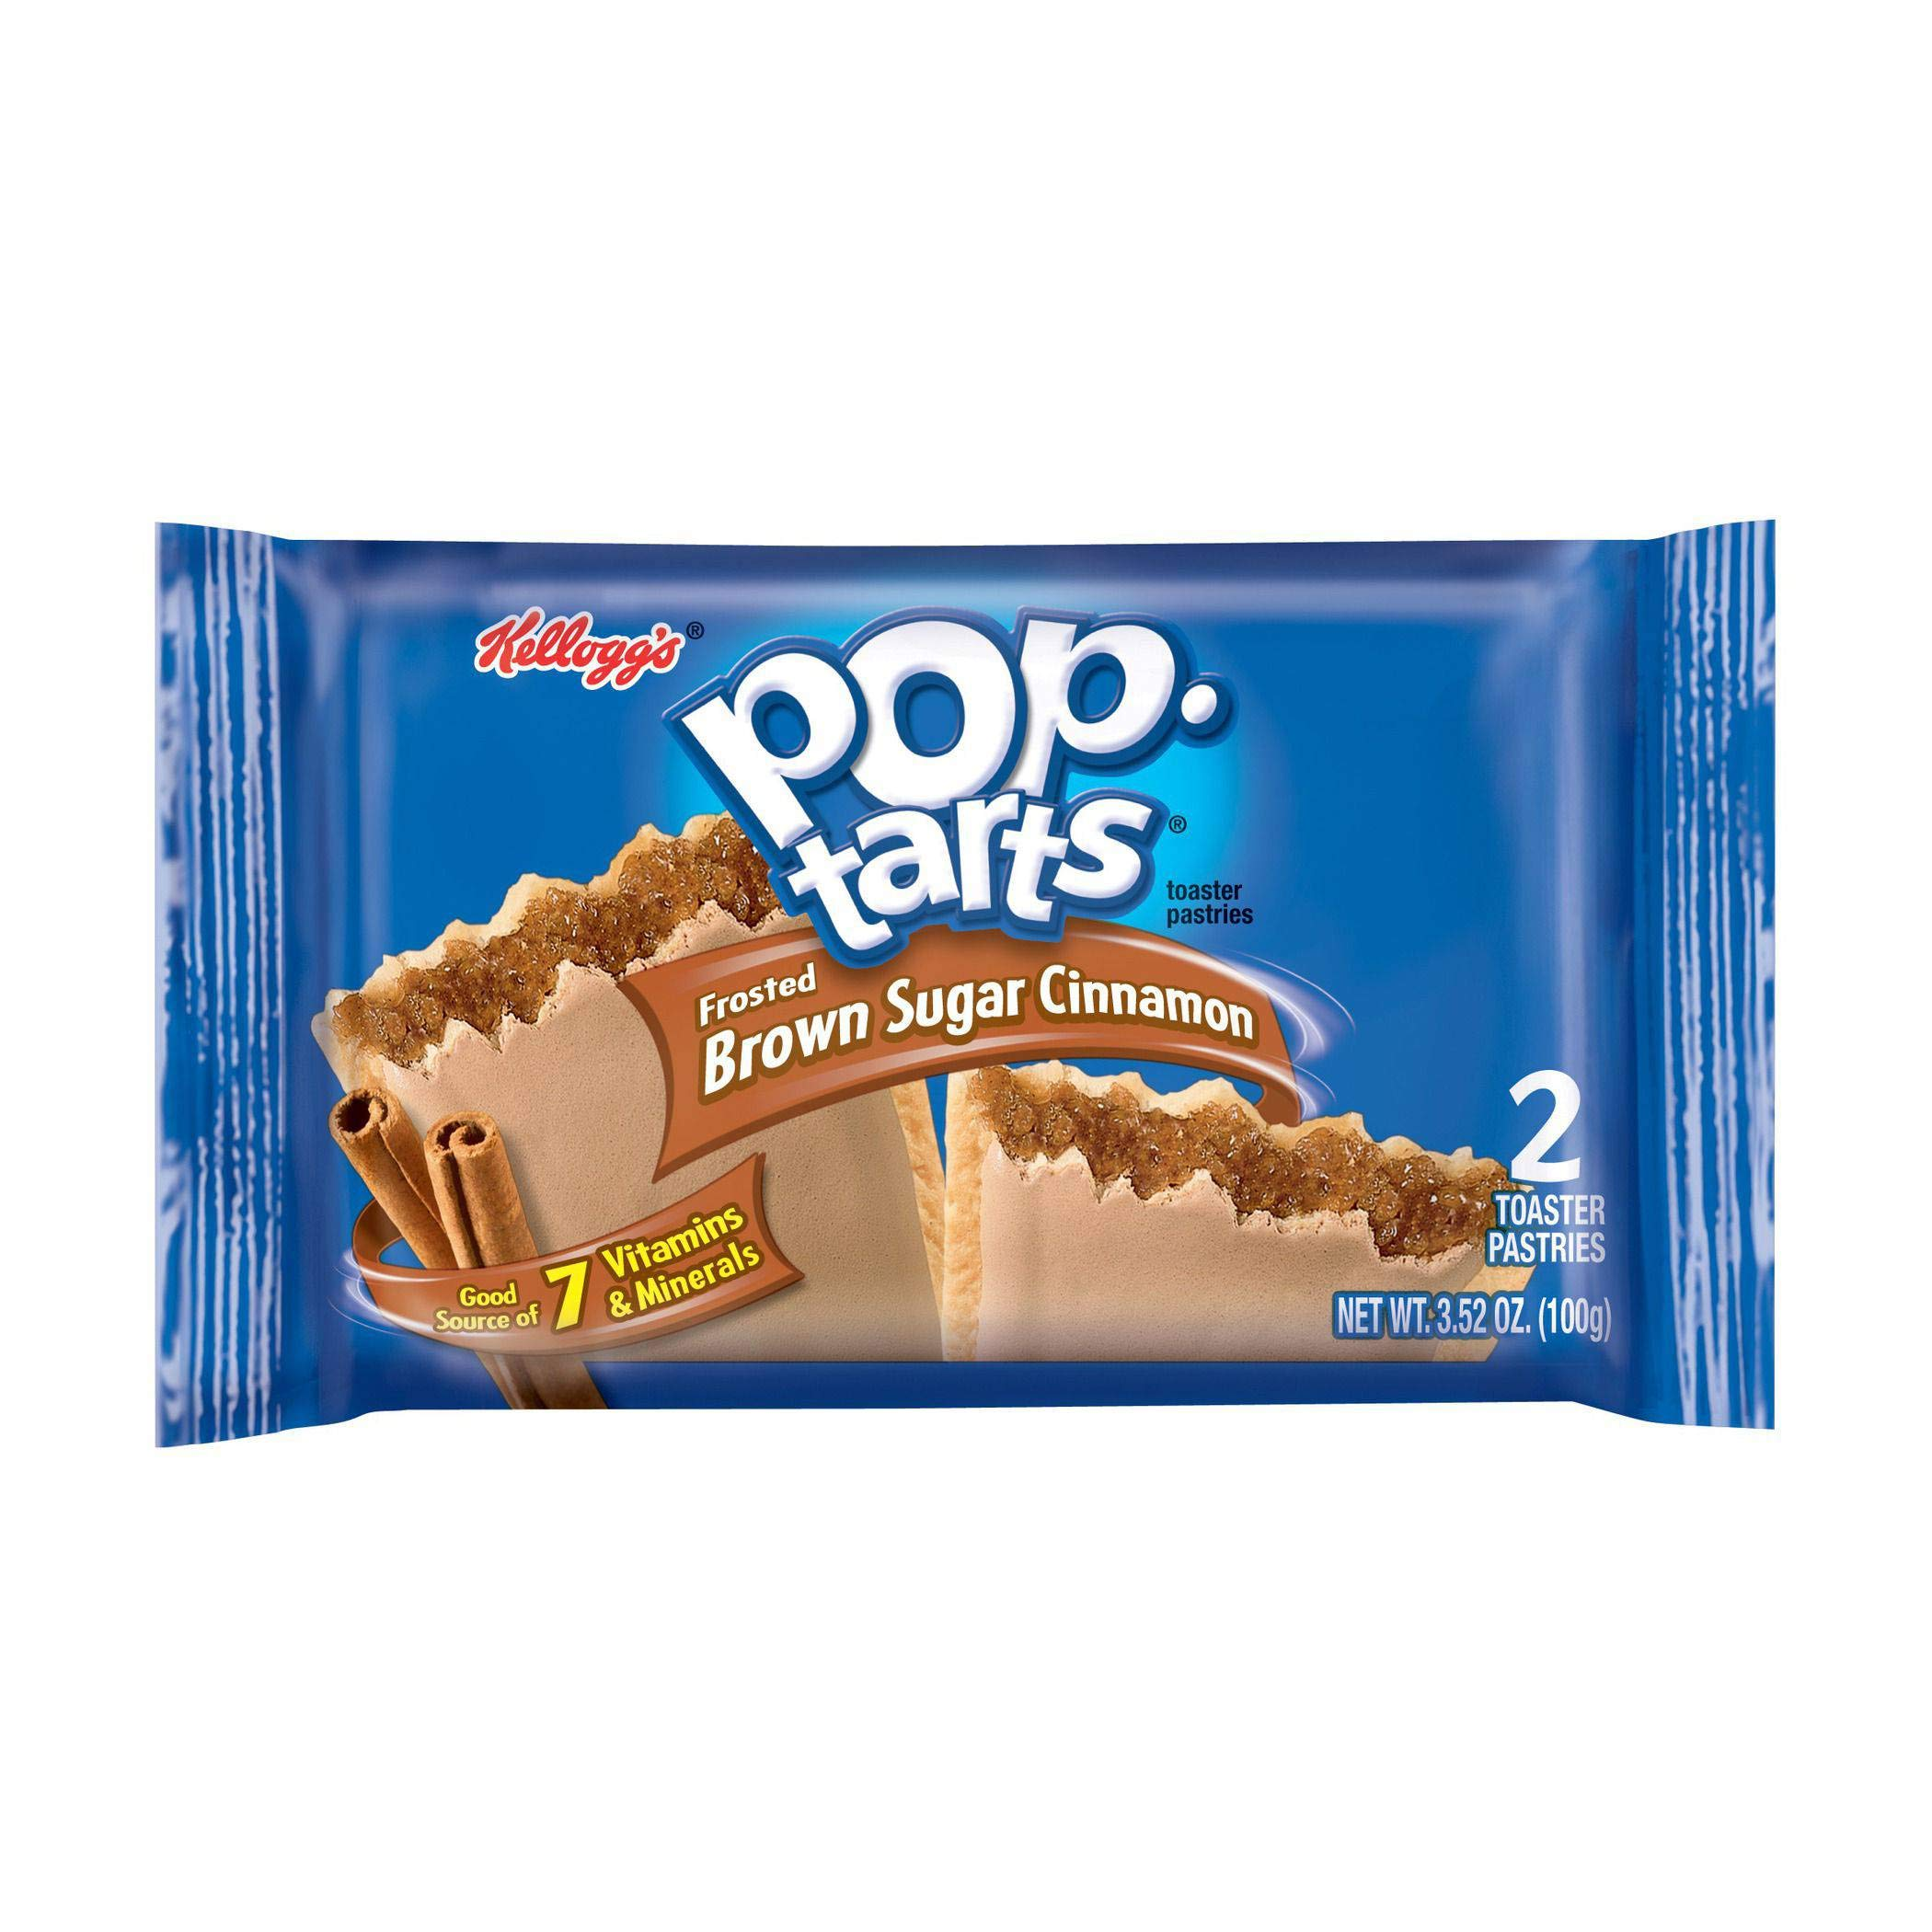 Frosted Brown Sugar Cinnamon Pop Tarts 12 Case 6/144 Count by Kellogg's (Image #1)